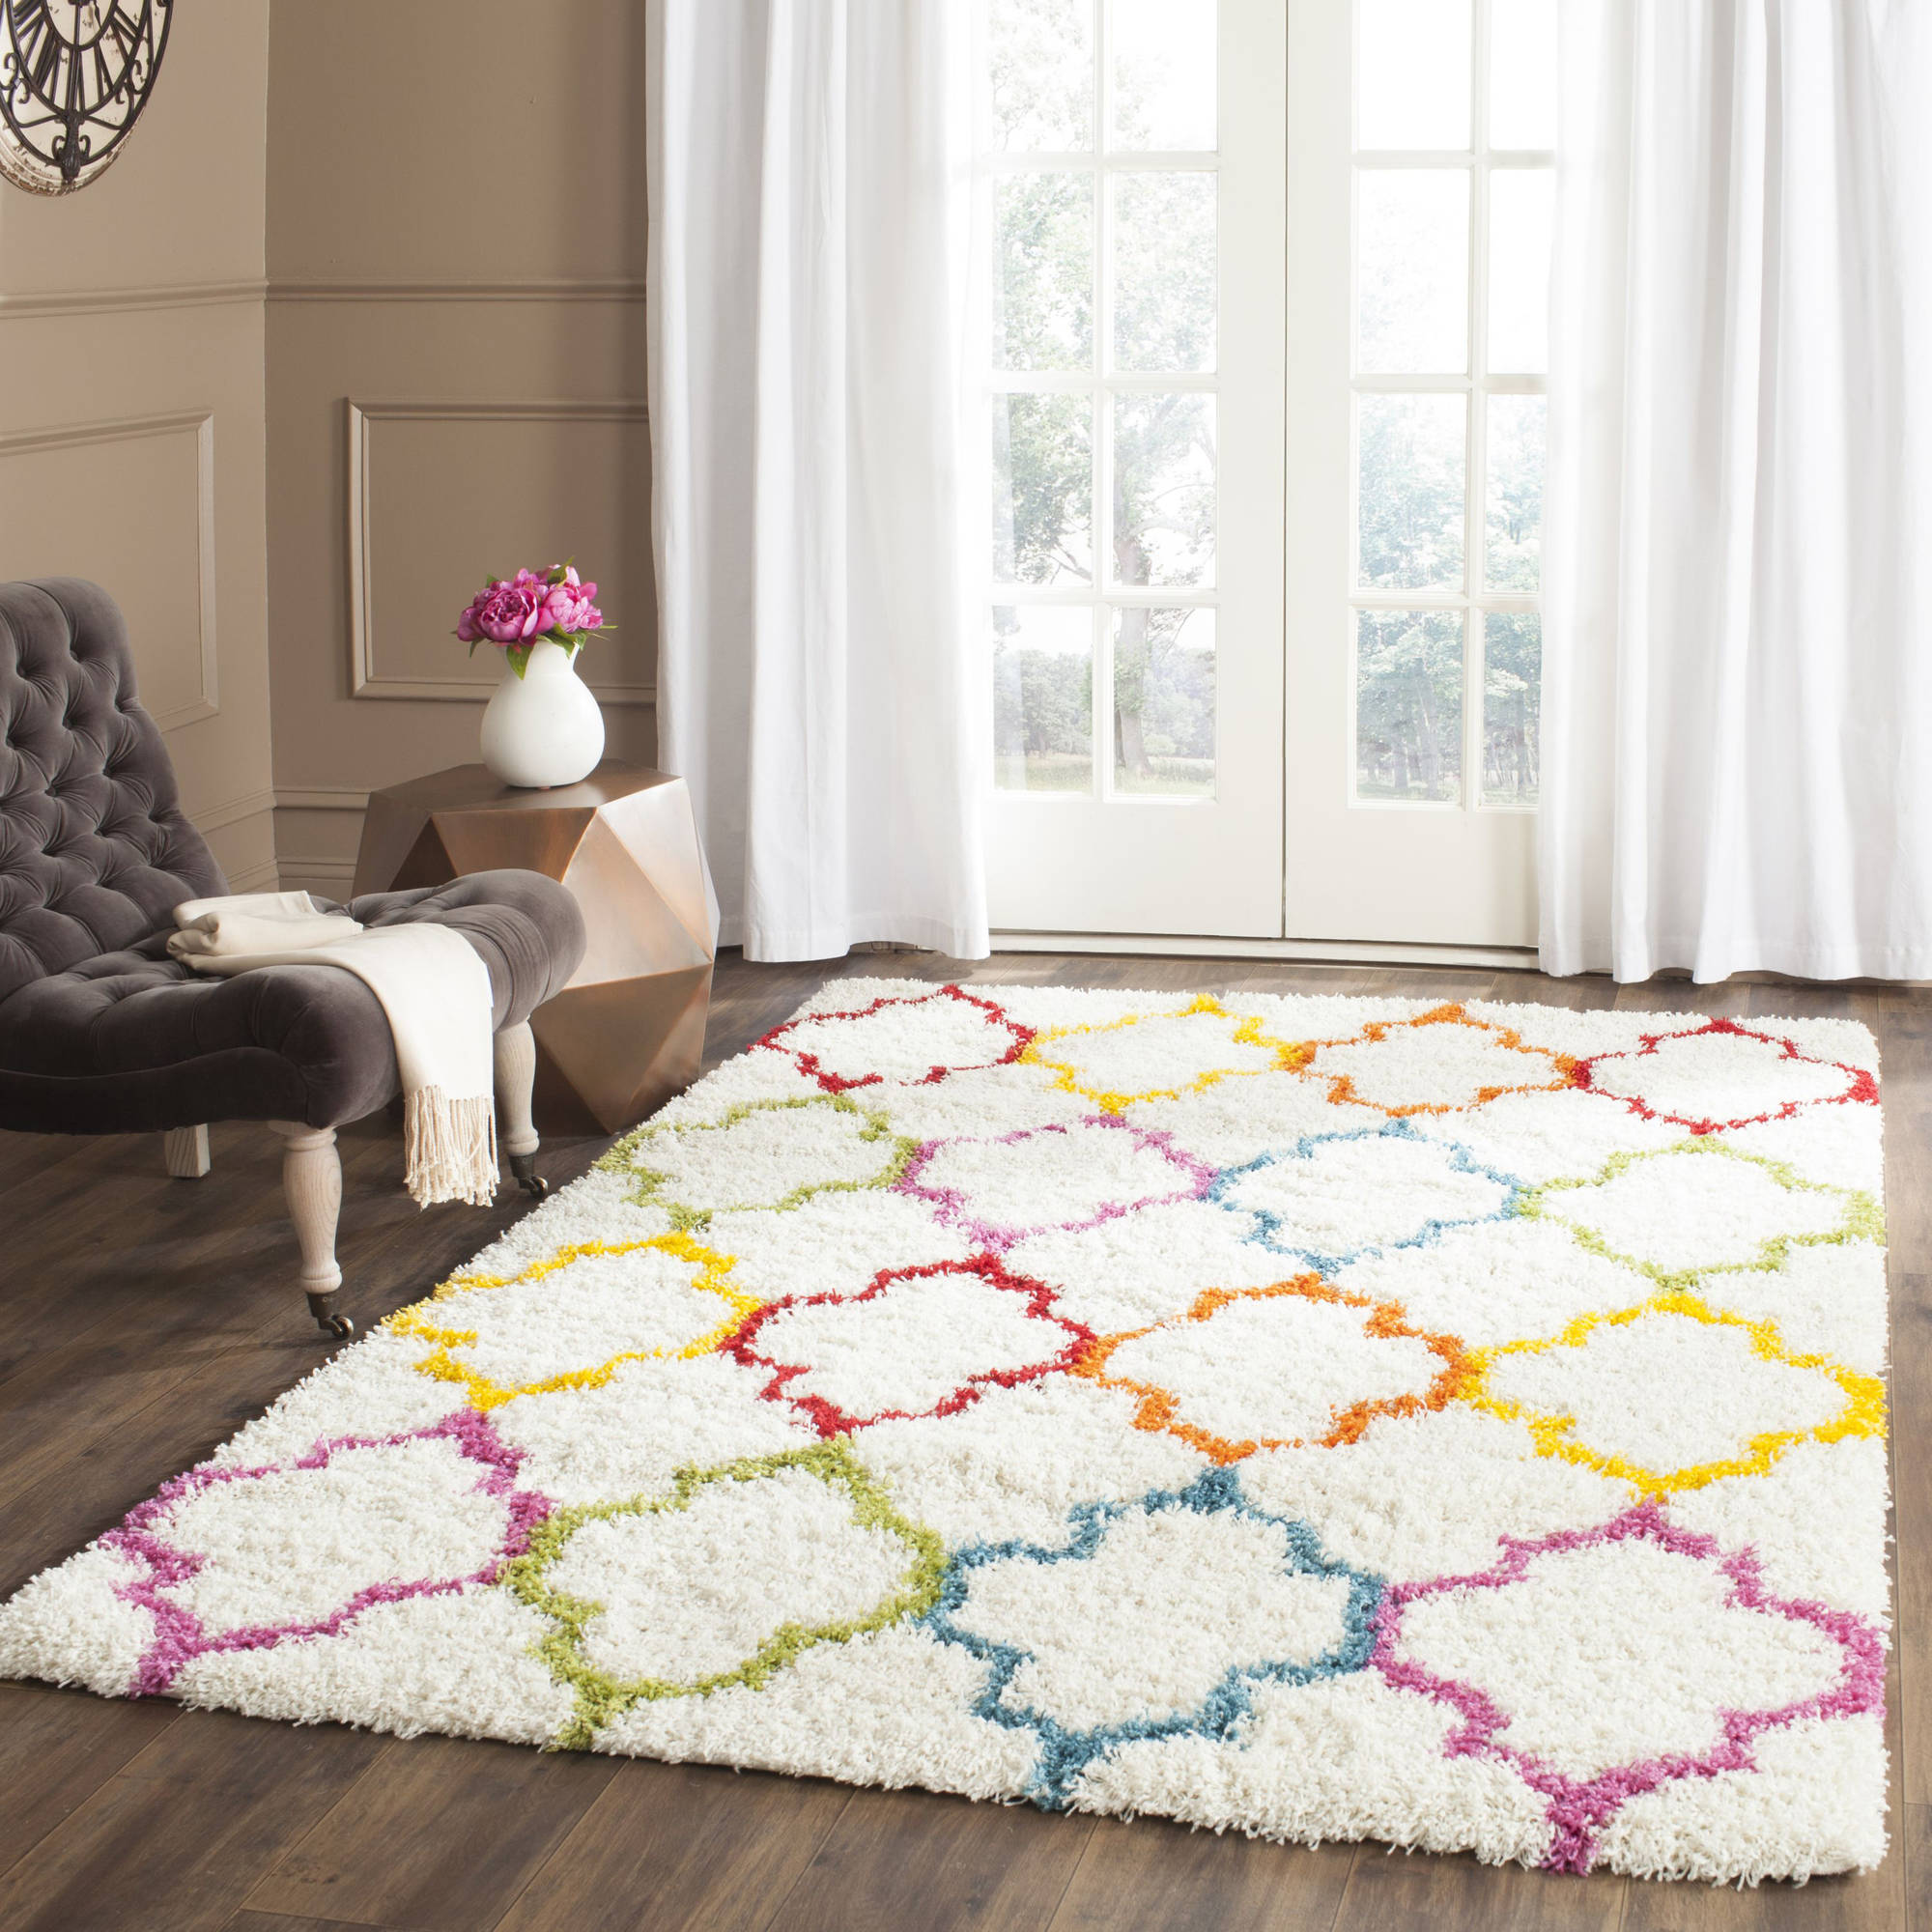 Safavieh Shag Kids Yadira Power Loomed Area Rug